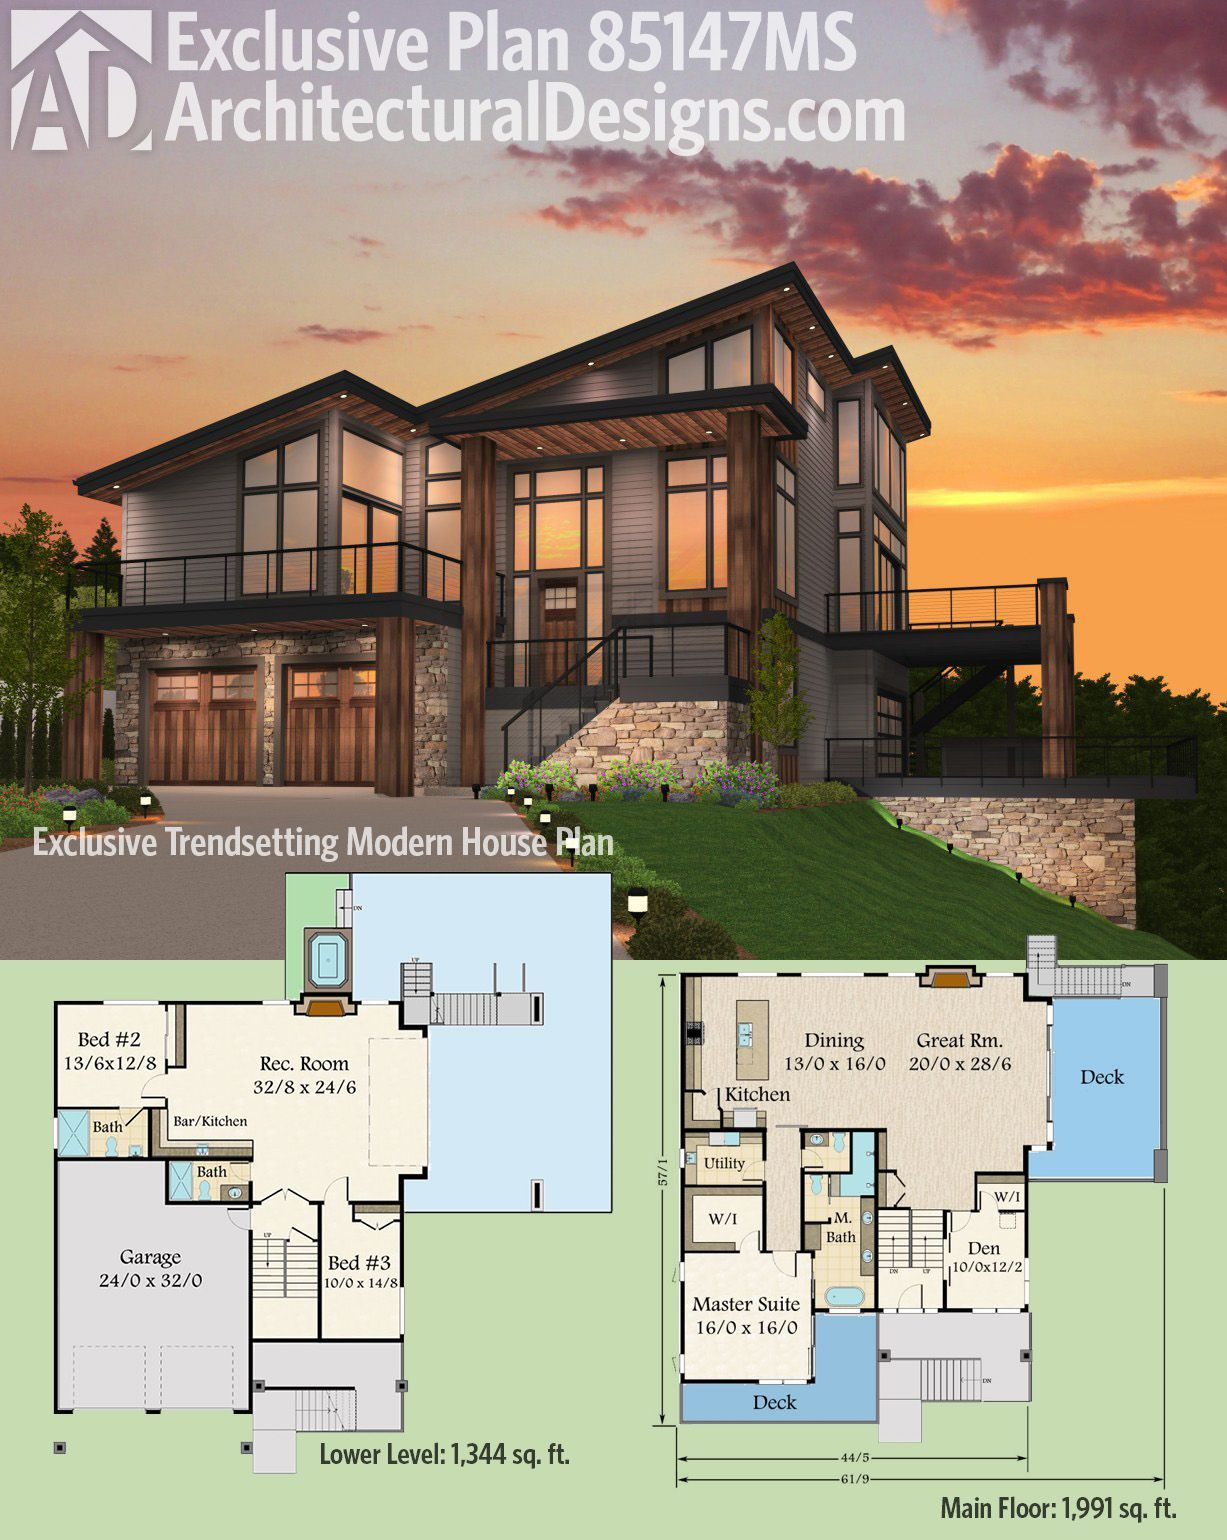 Architectural Designs Exclusive Modern House Plan 85147MS